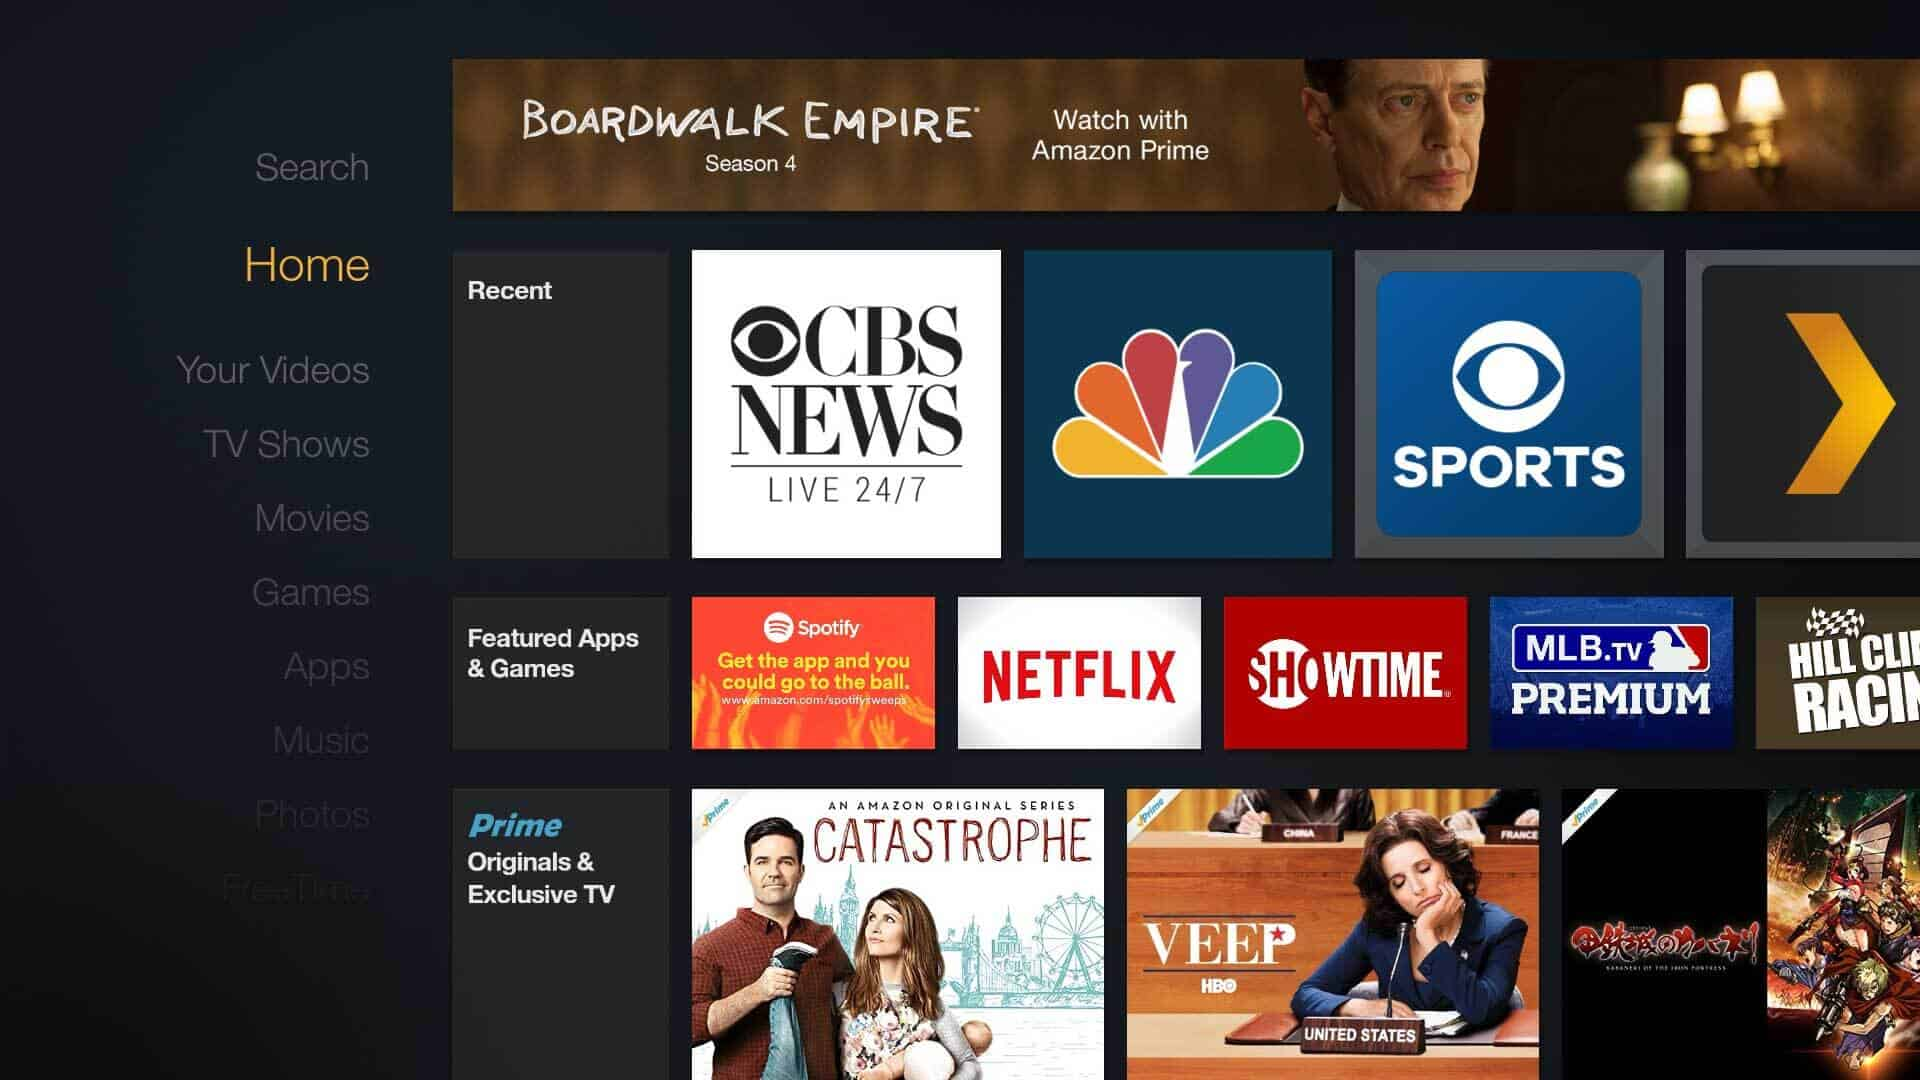 How to install ES File Explorer on Amazon Fire TV?